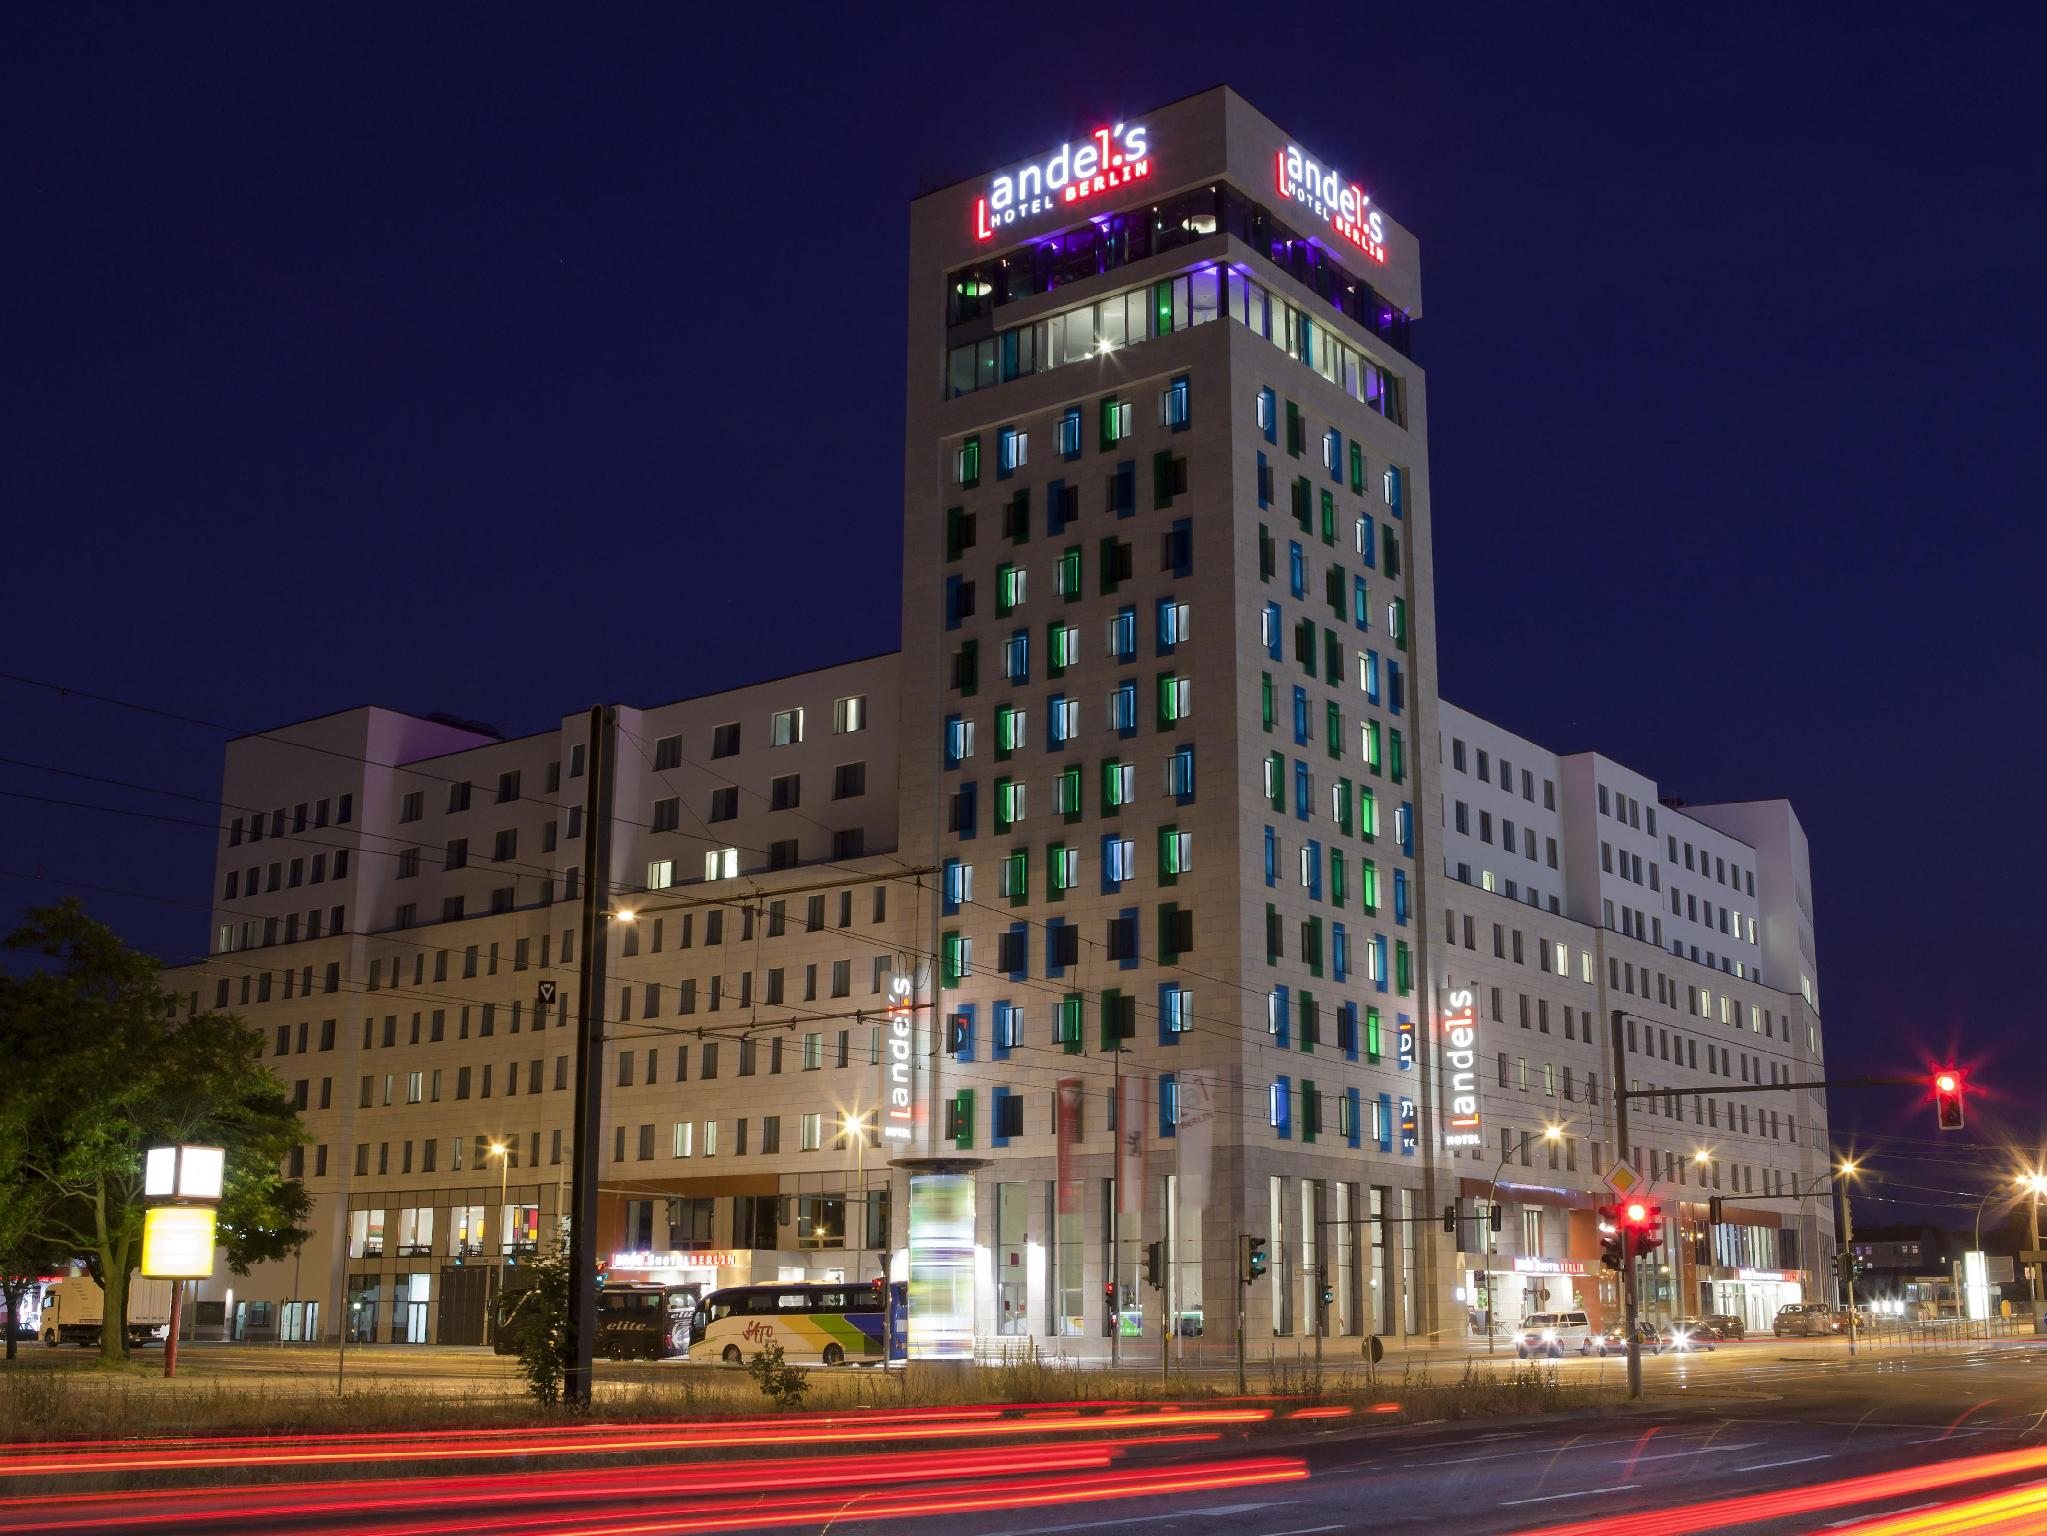 andel's Hotel Berlin, managed by Vienna International Hotels and Resorts Berlín